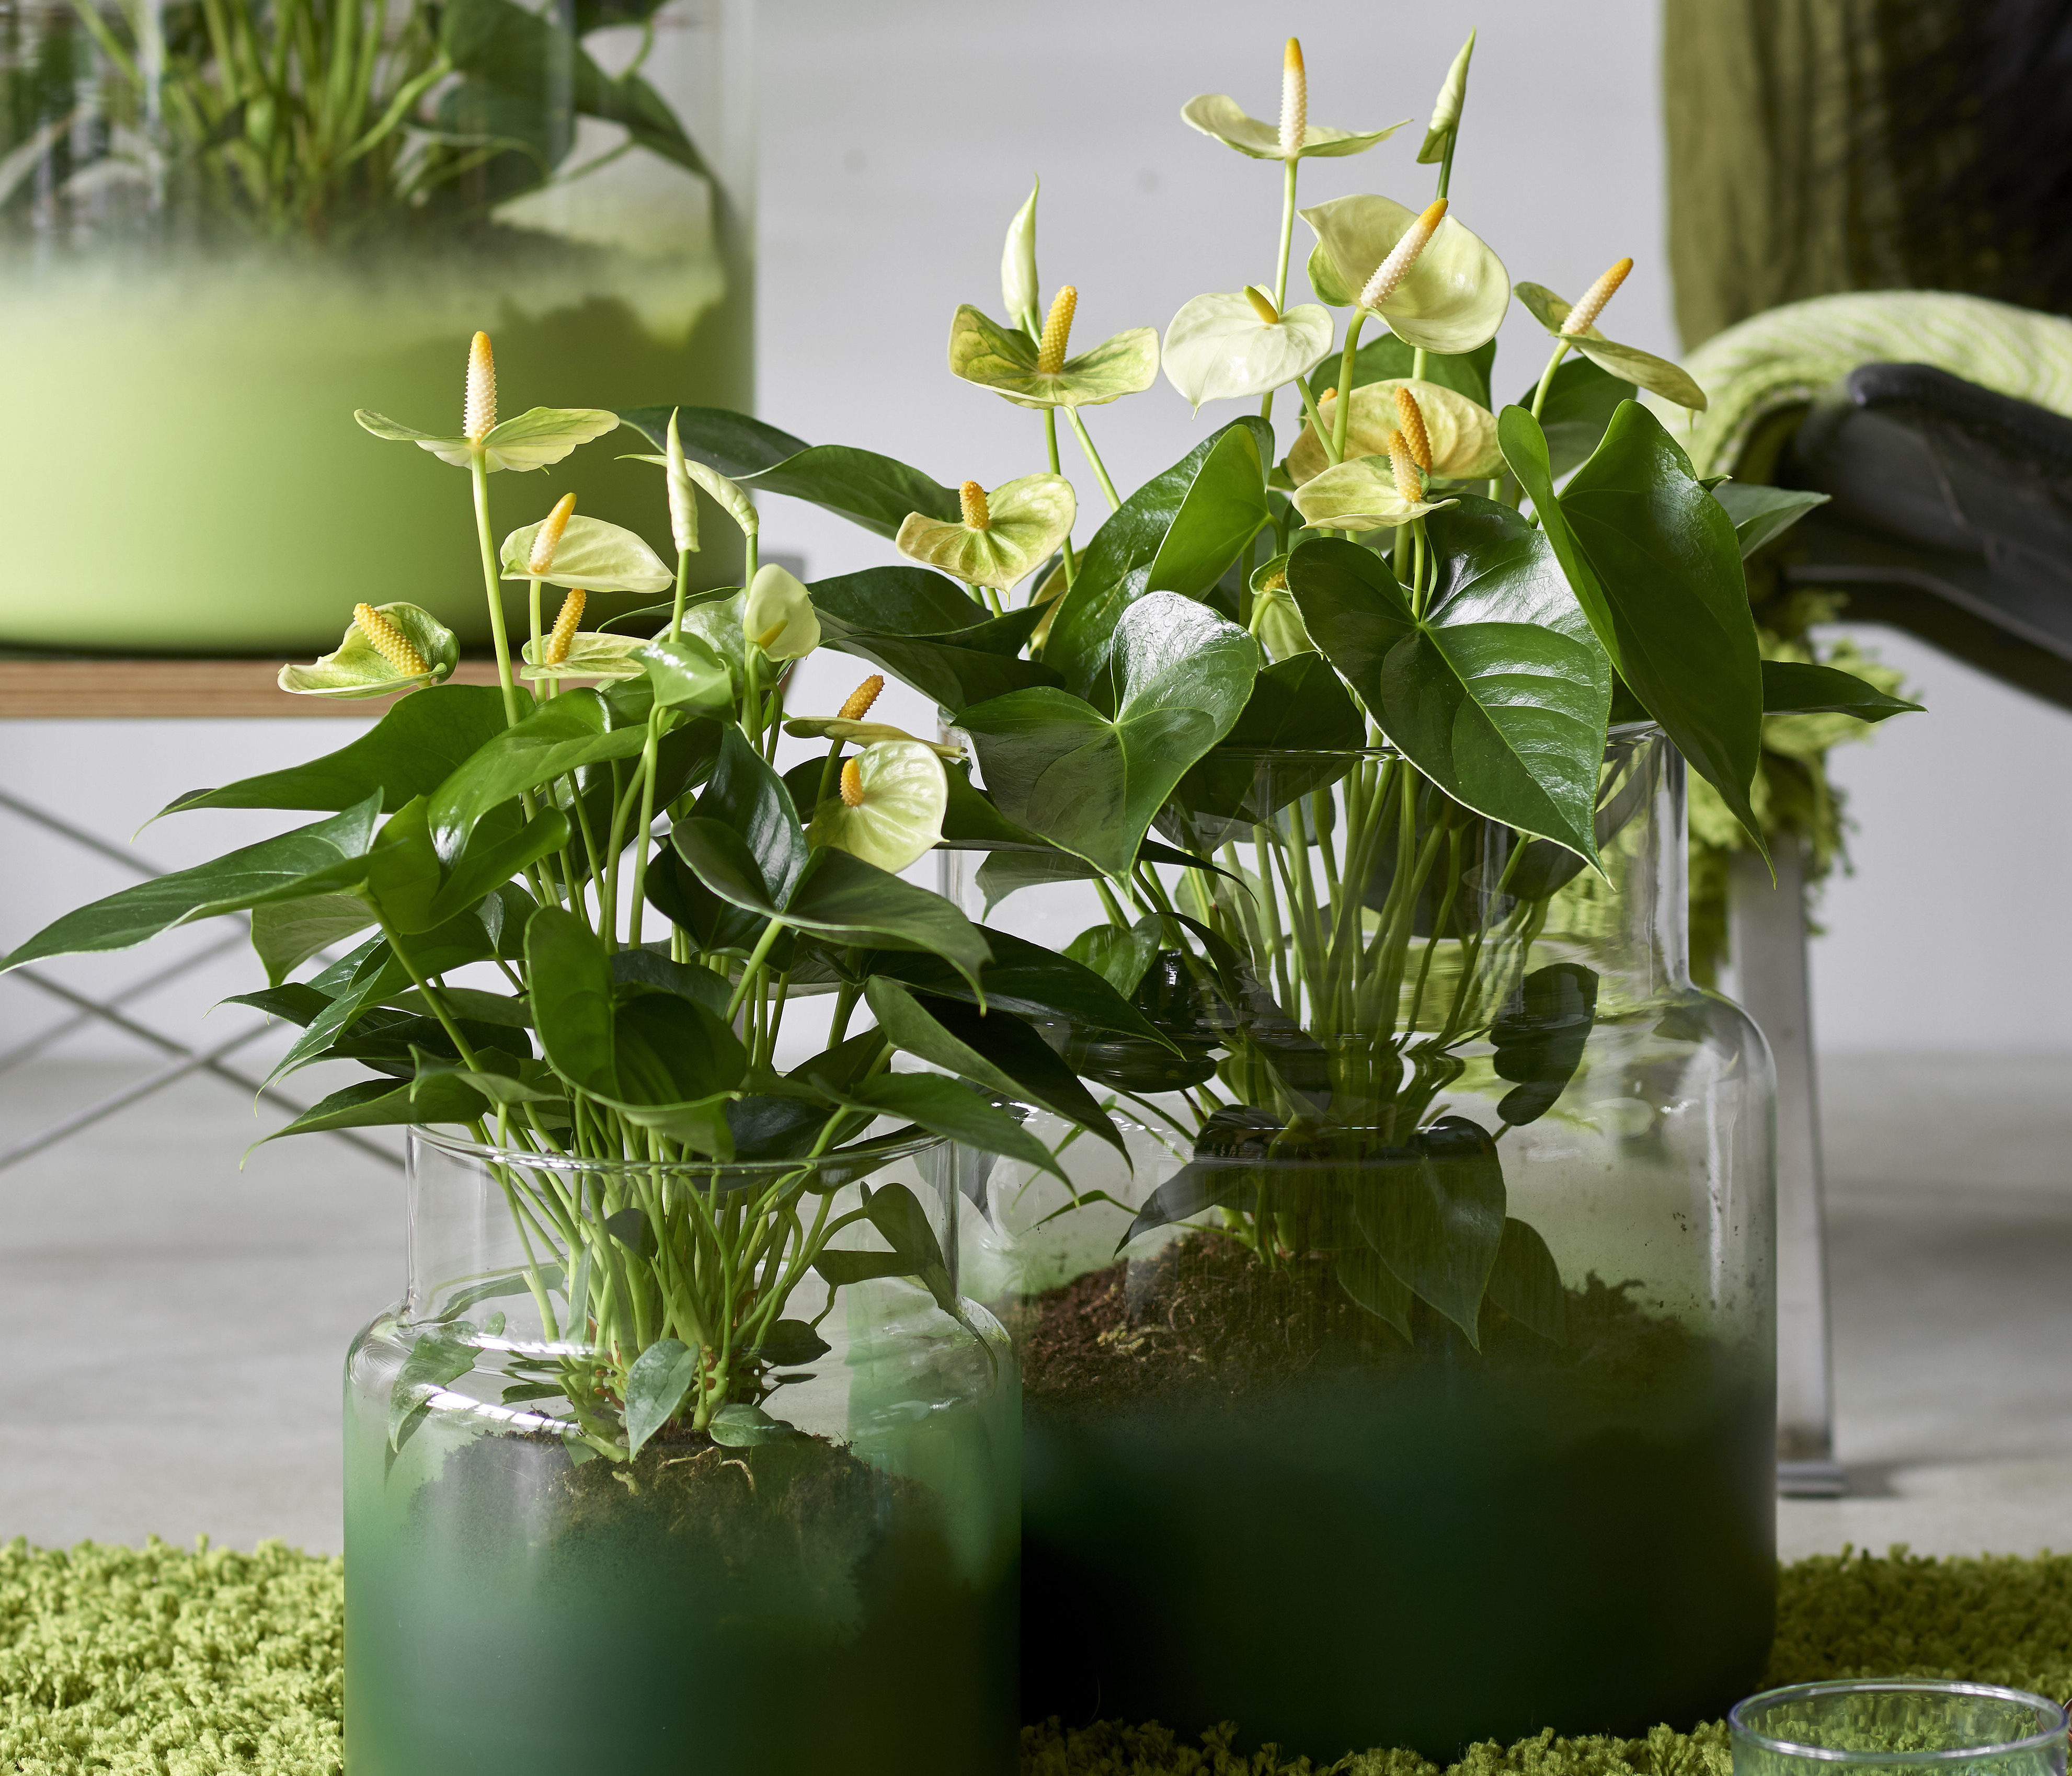 3 things you should not do with an anthurium plant